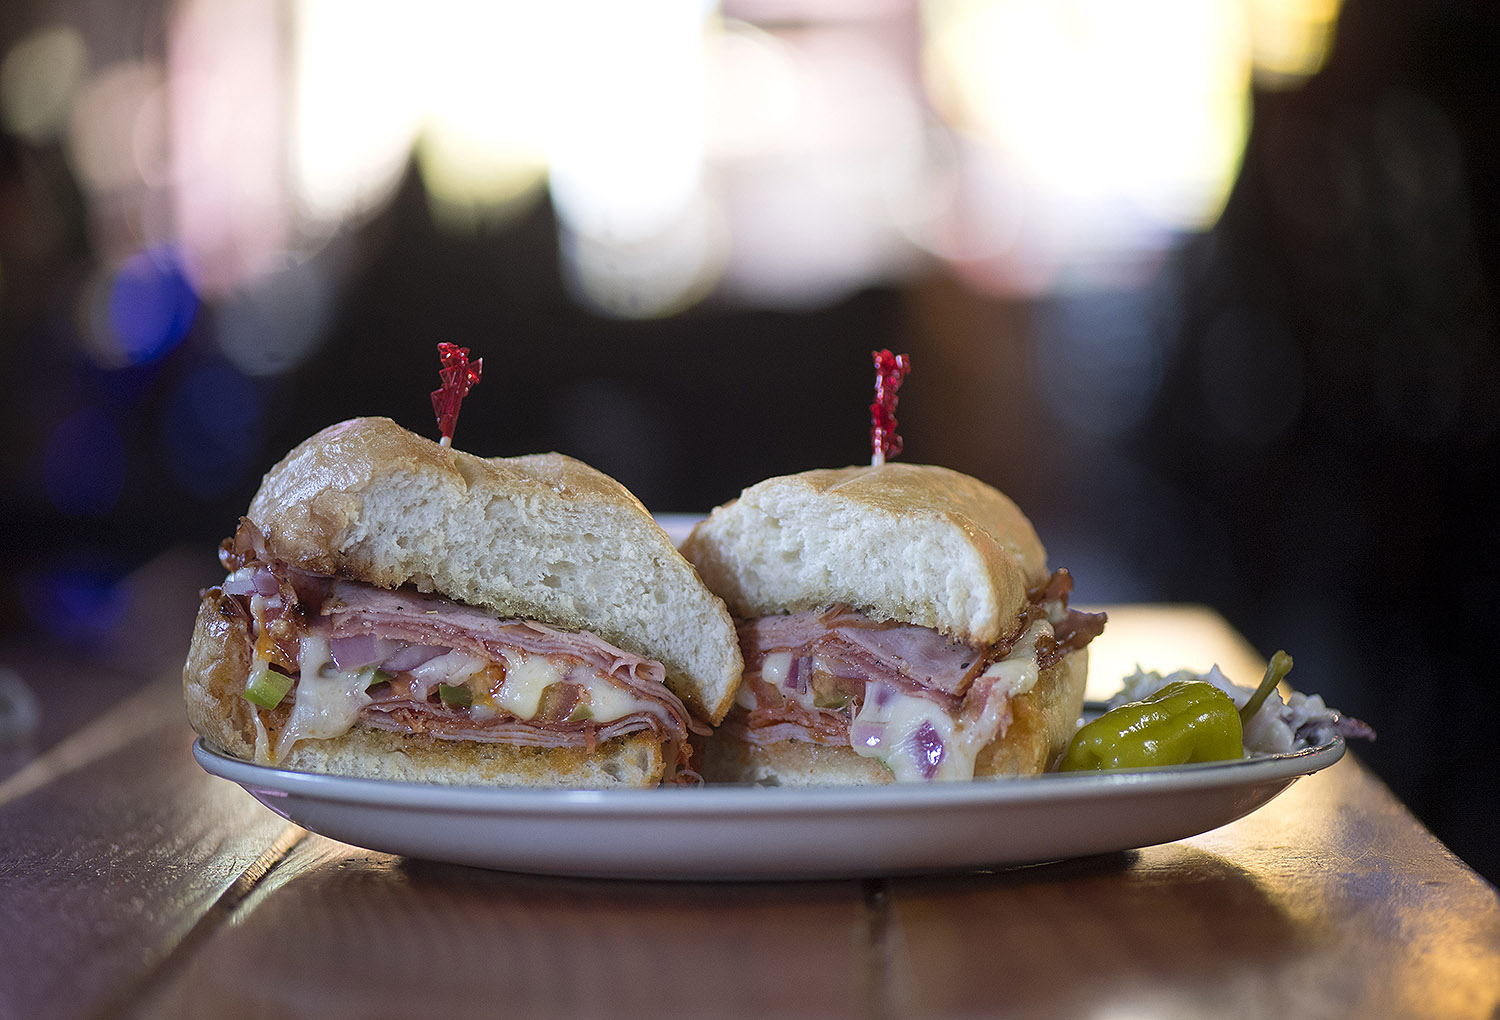 People travel for miles for one of the O.T.'s famous sandwiches.